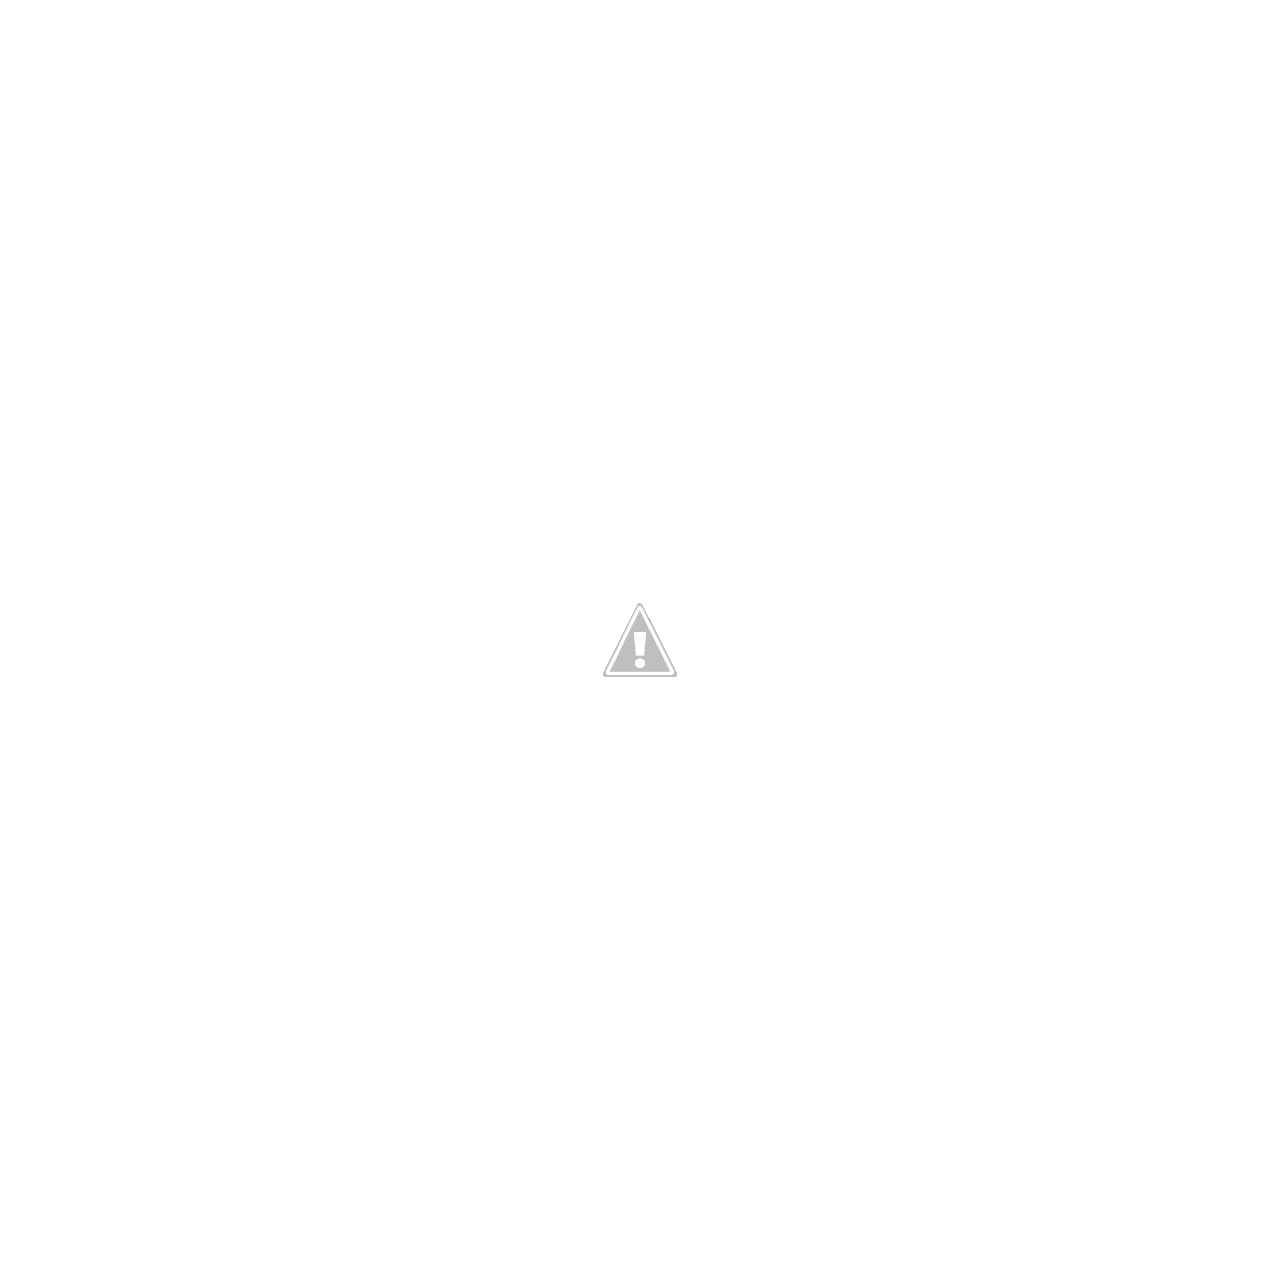 Arms Depot Gun Shop - OLD ODD & UNUSUAL ITEMS